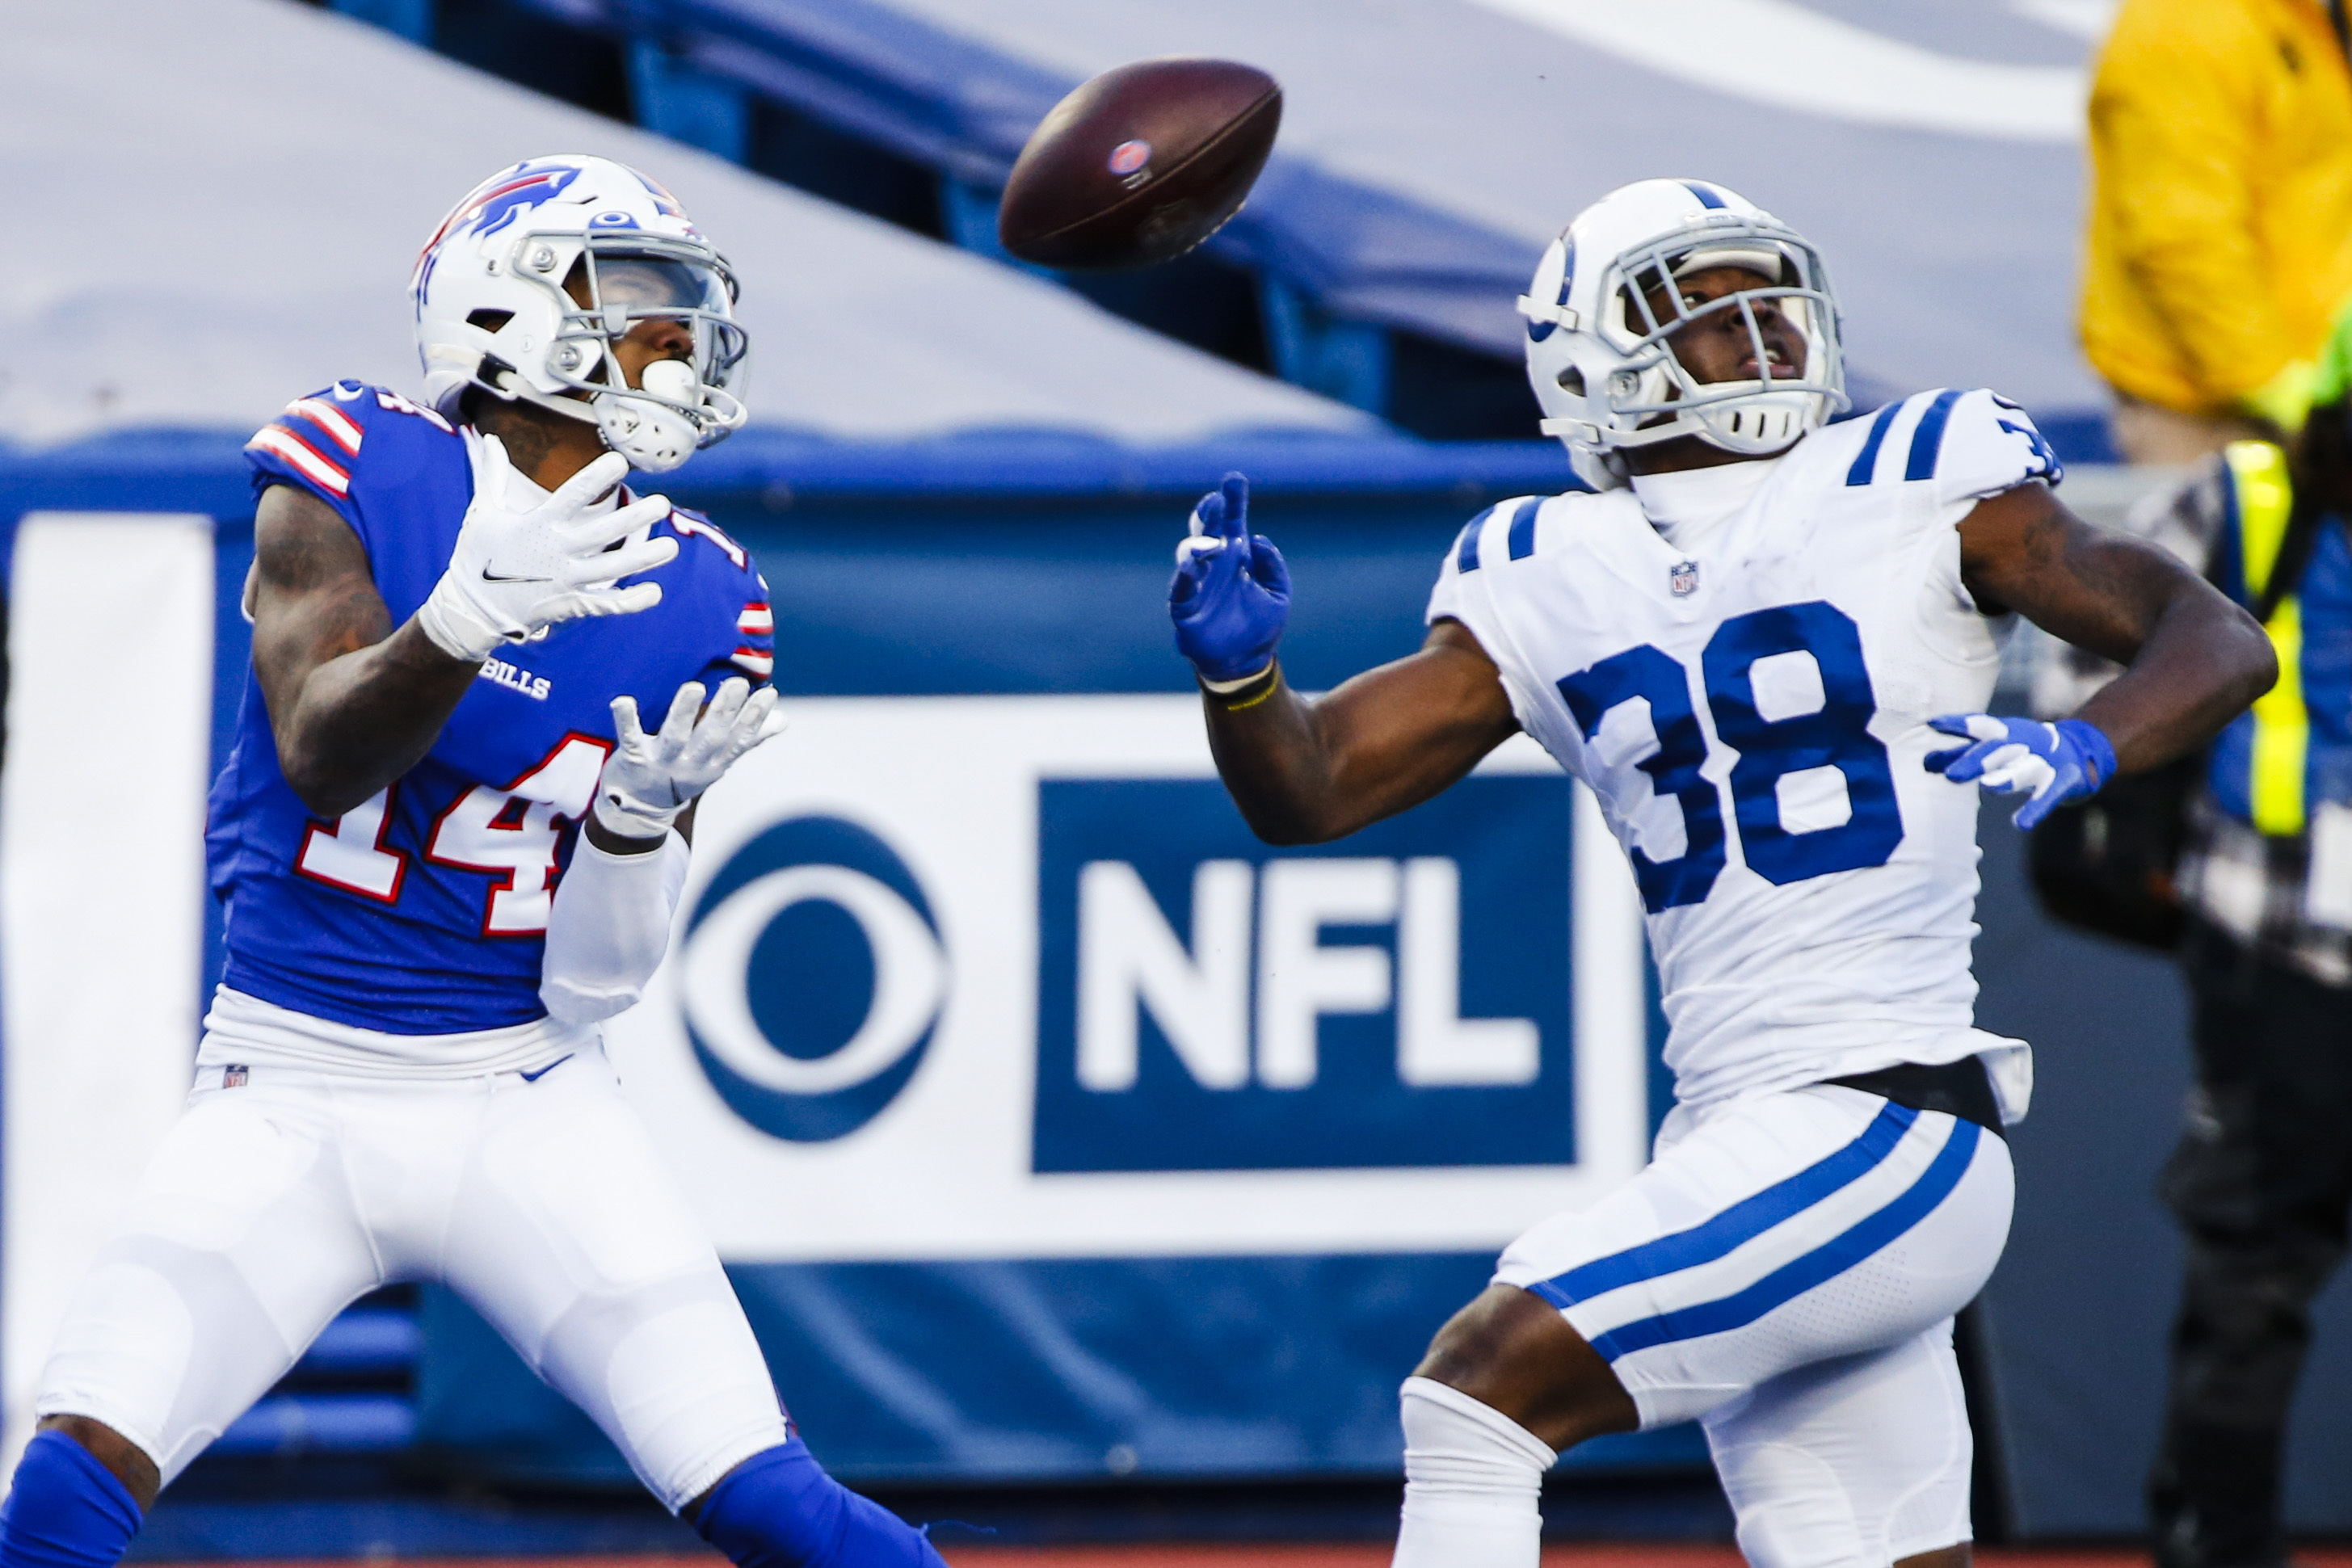 Colts vs chiefs playoffs 2nd half betting election betting odds accuracy speaks